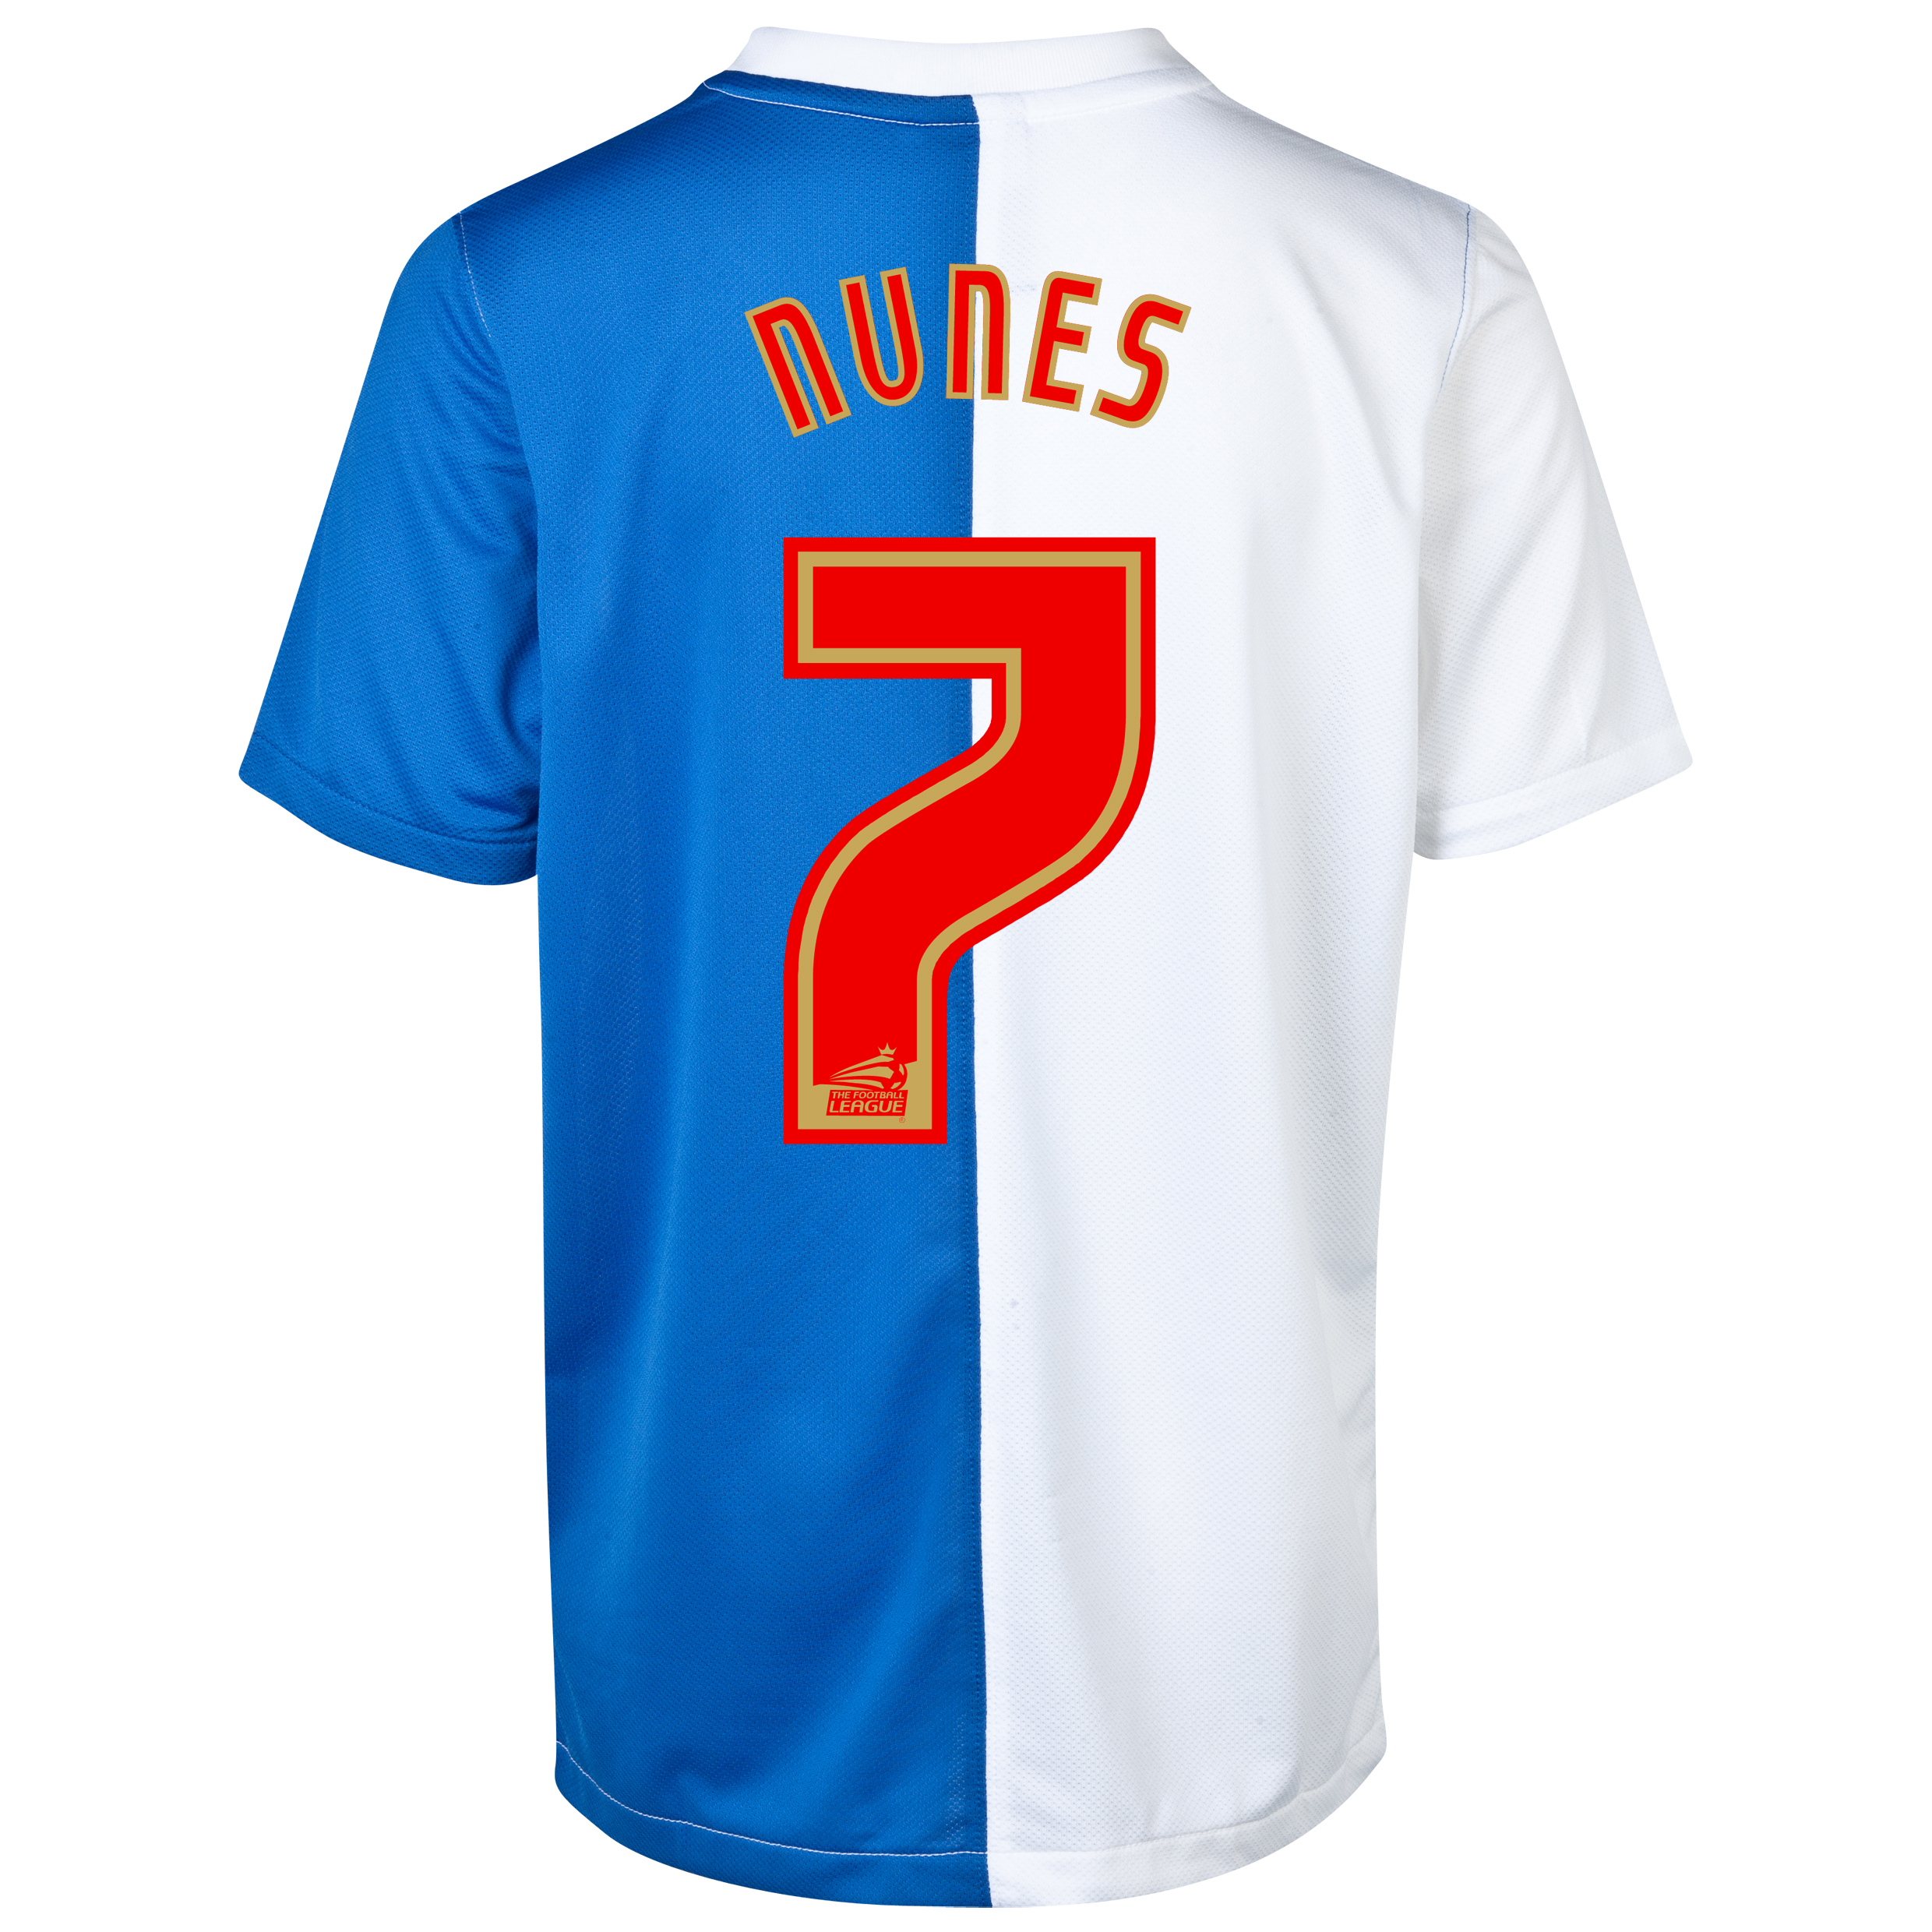 Blackburn Rovers Home Shirt 2013/14 with Nunes 7 printing